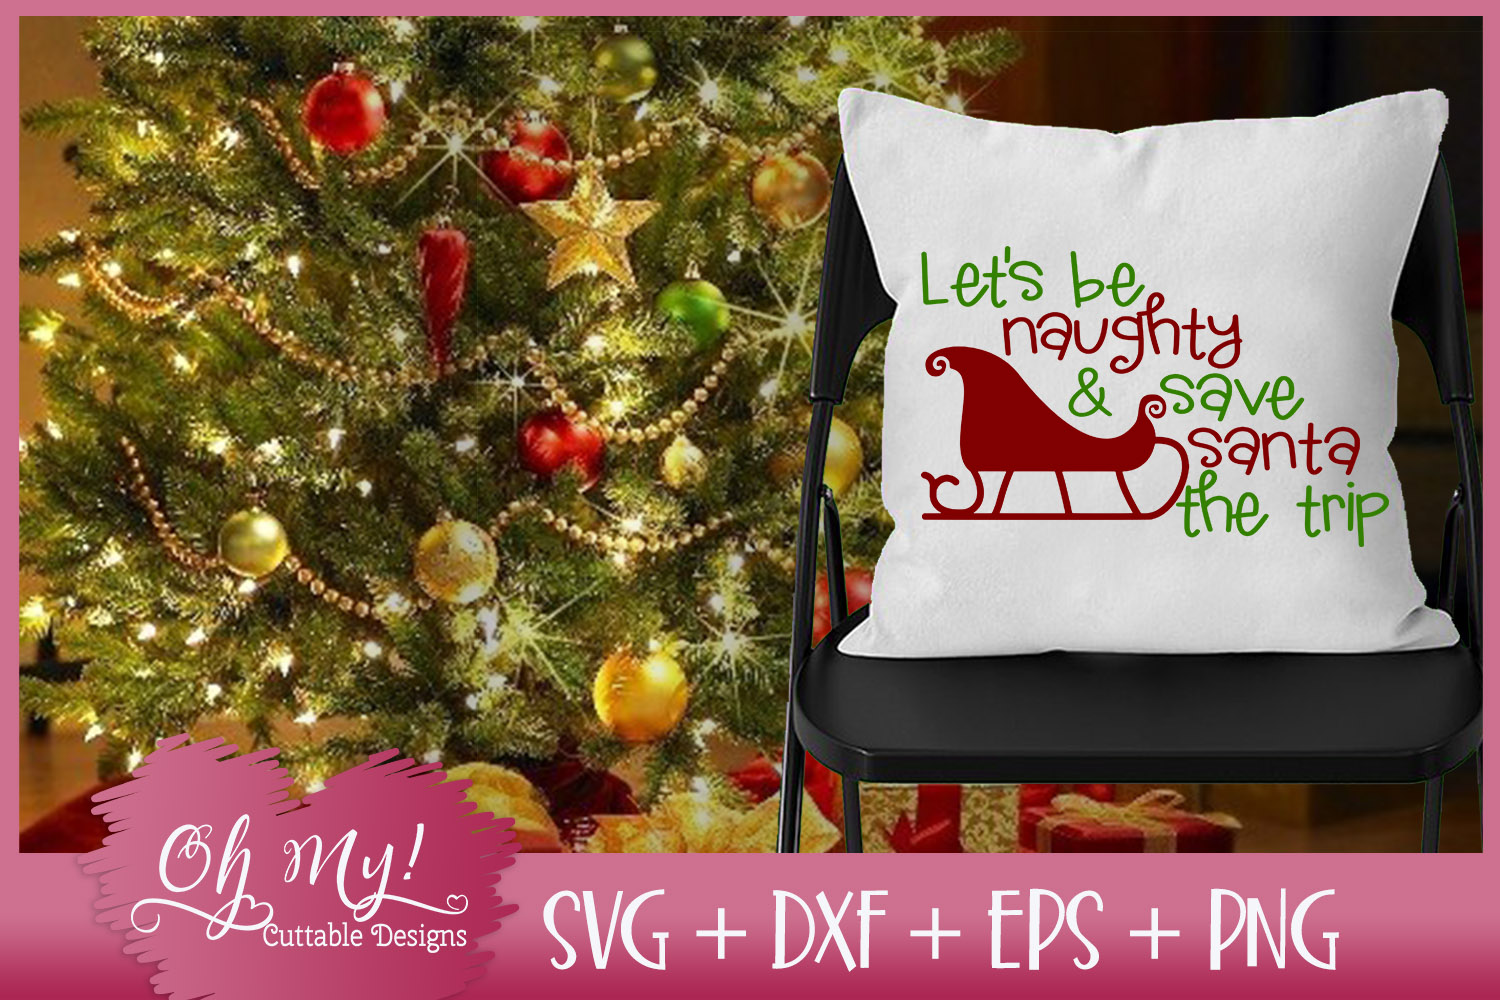 Let's Be Naughty and Save Santa The Trip - SVG EPS DXF PNG example image 2